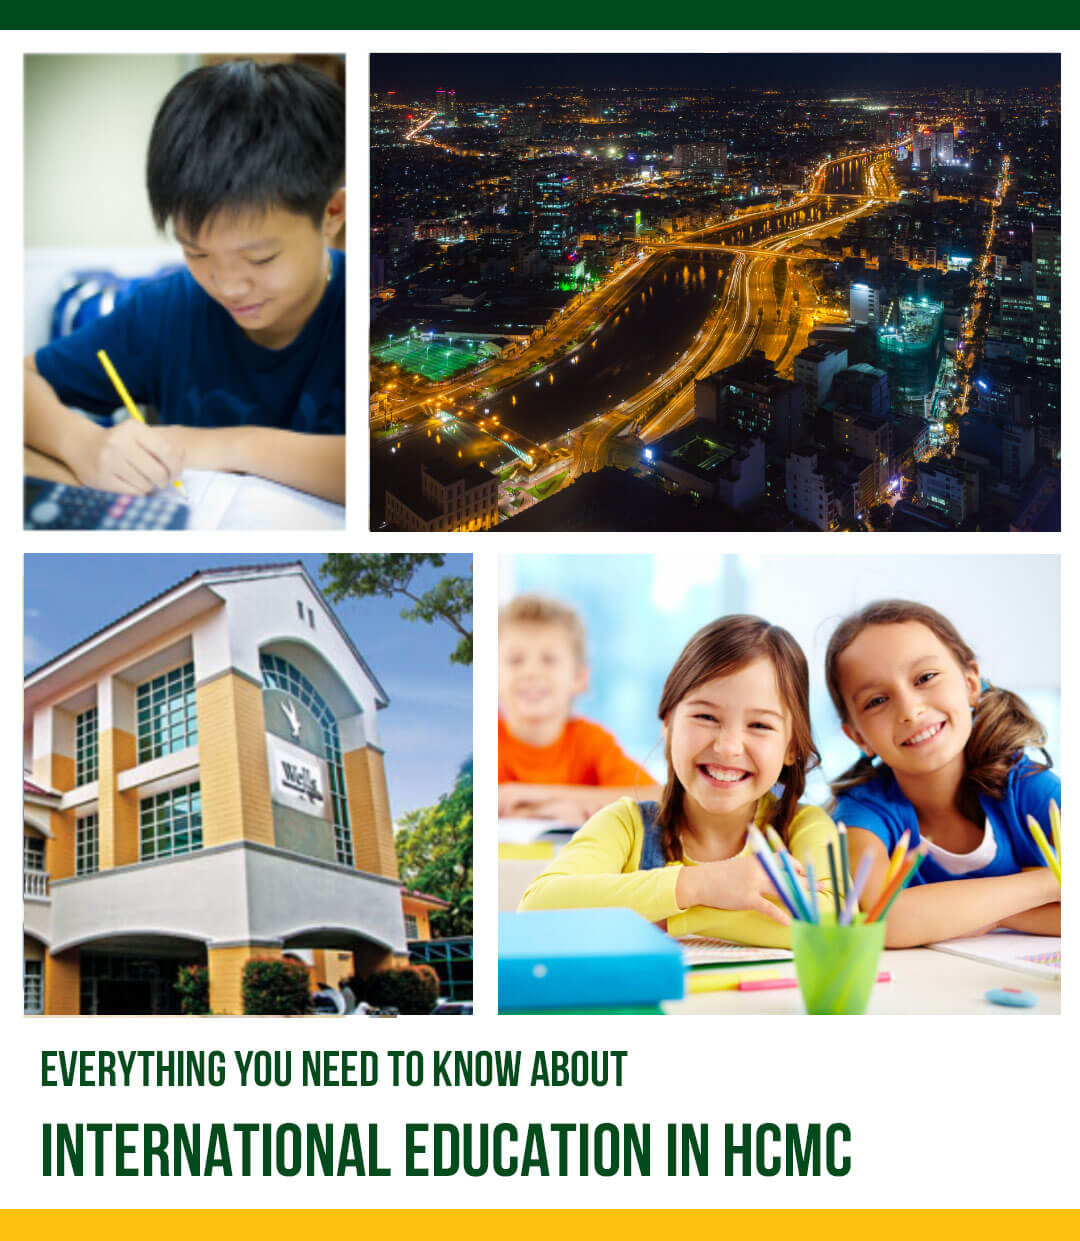 Everything You Need to know about International Education in HCMC - Cover